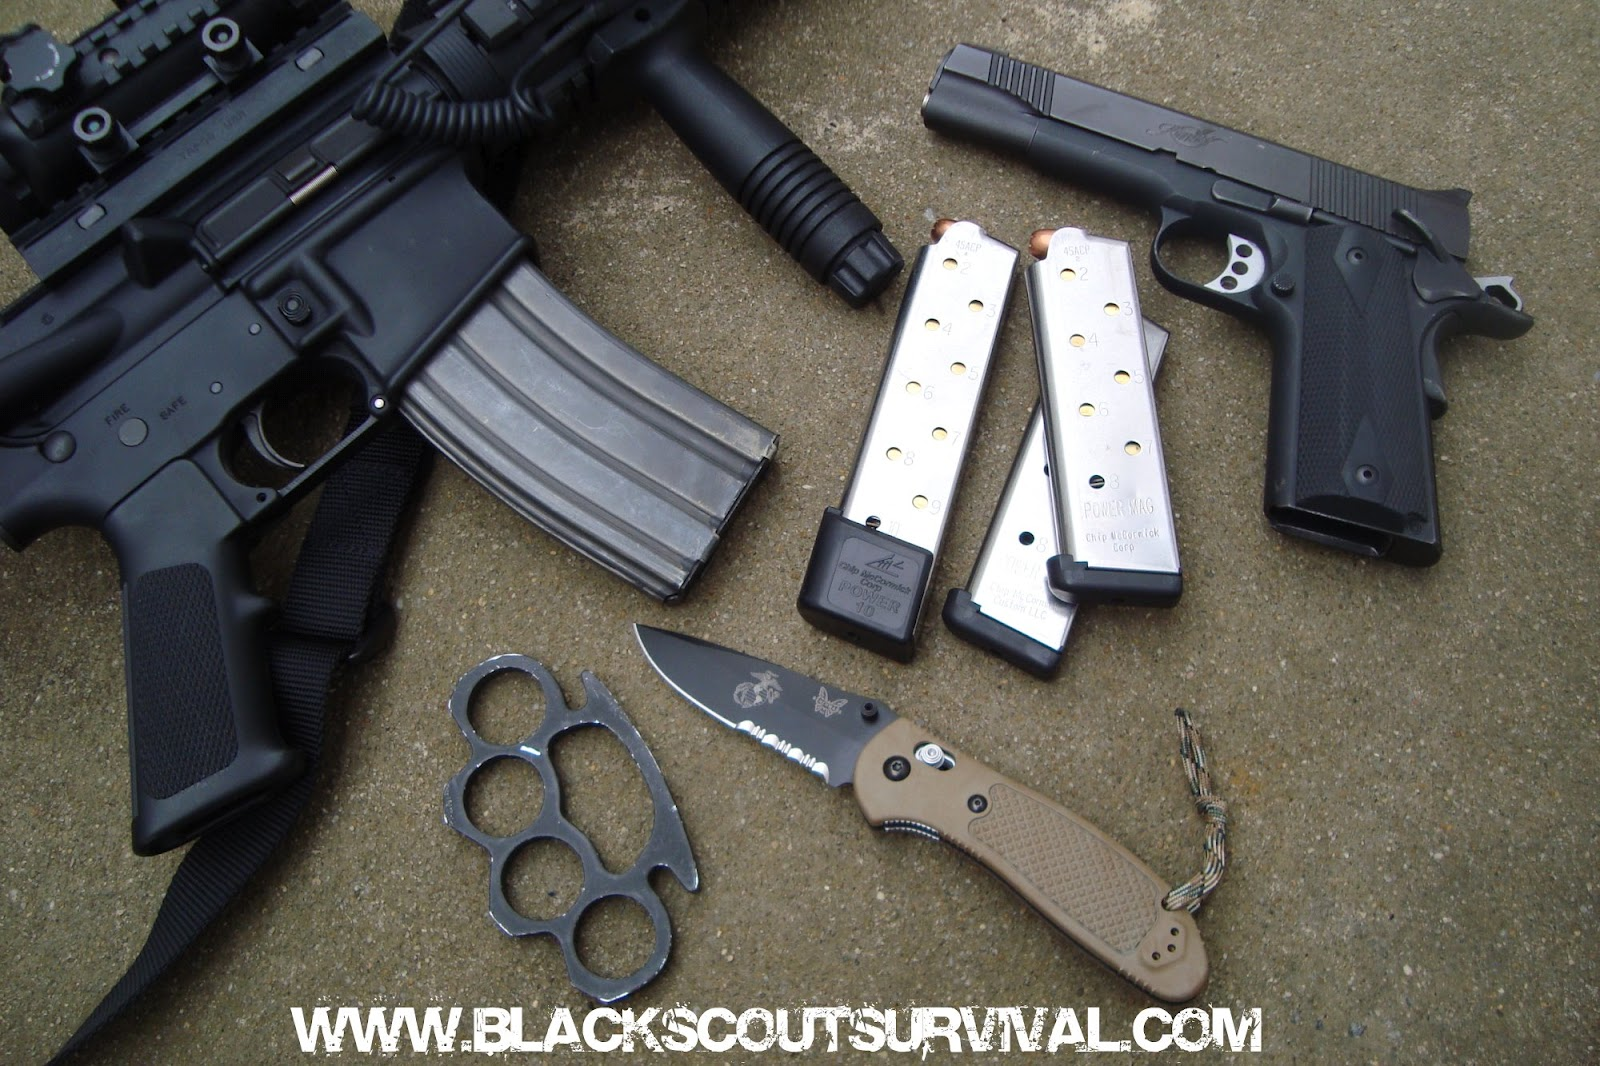 Bug Out Weapons Bag : Black scout survival building your bug out bag weapons